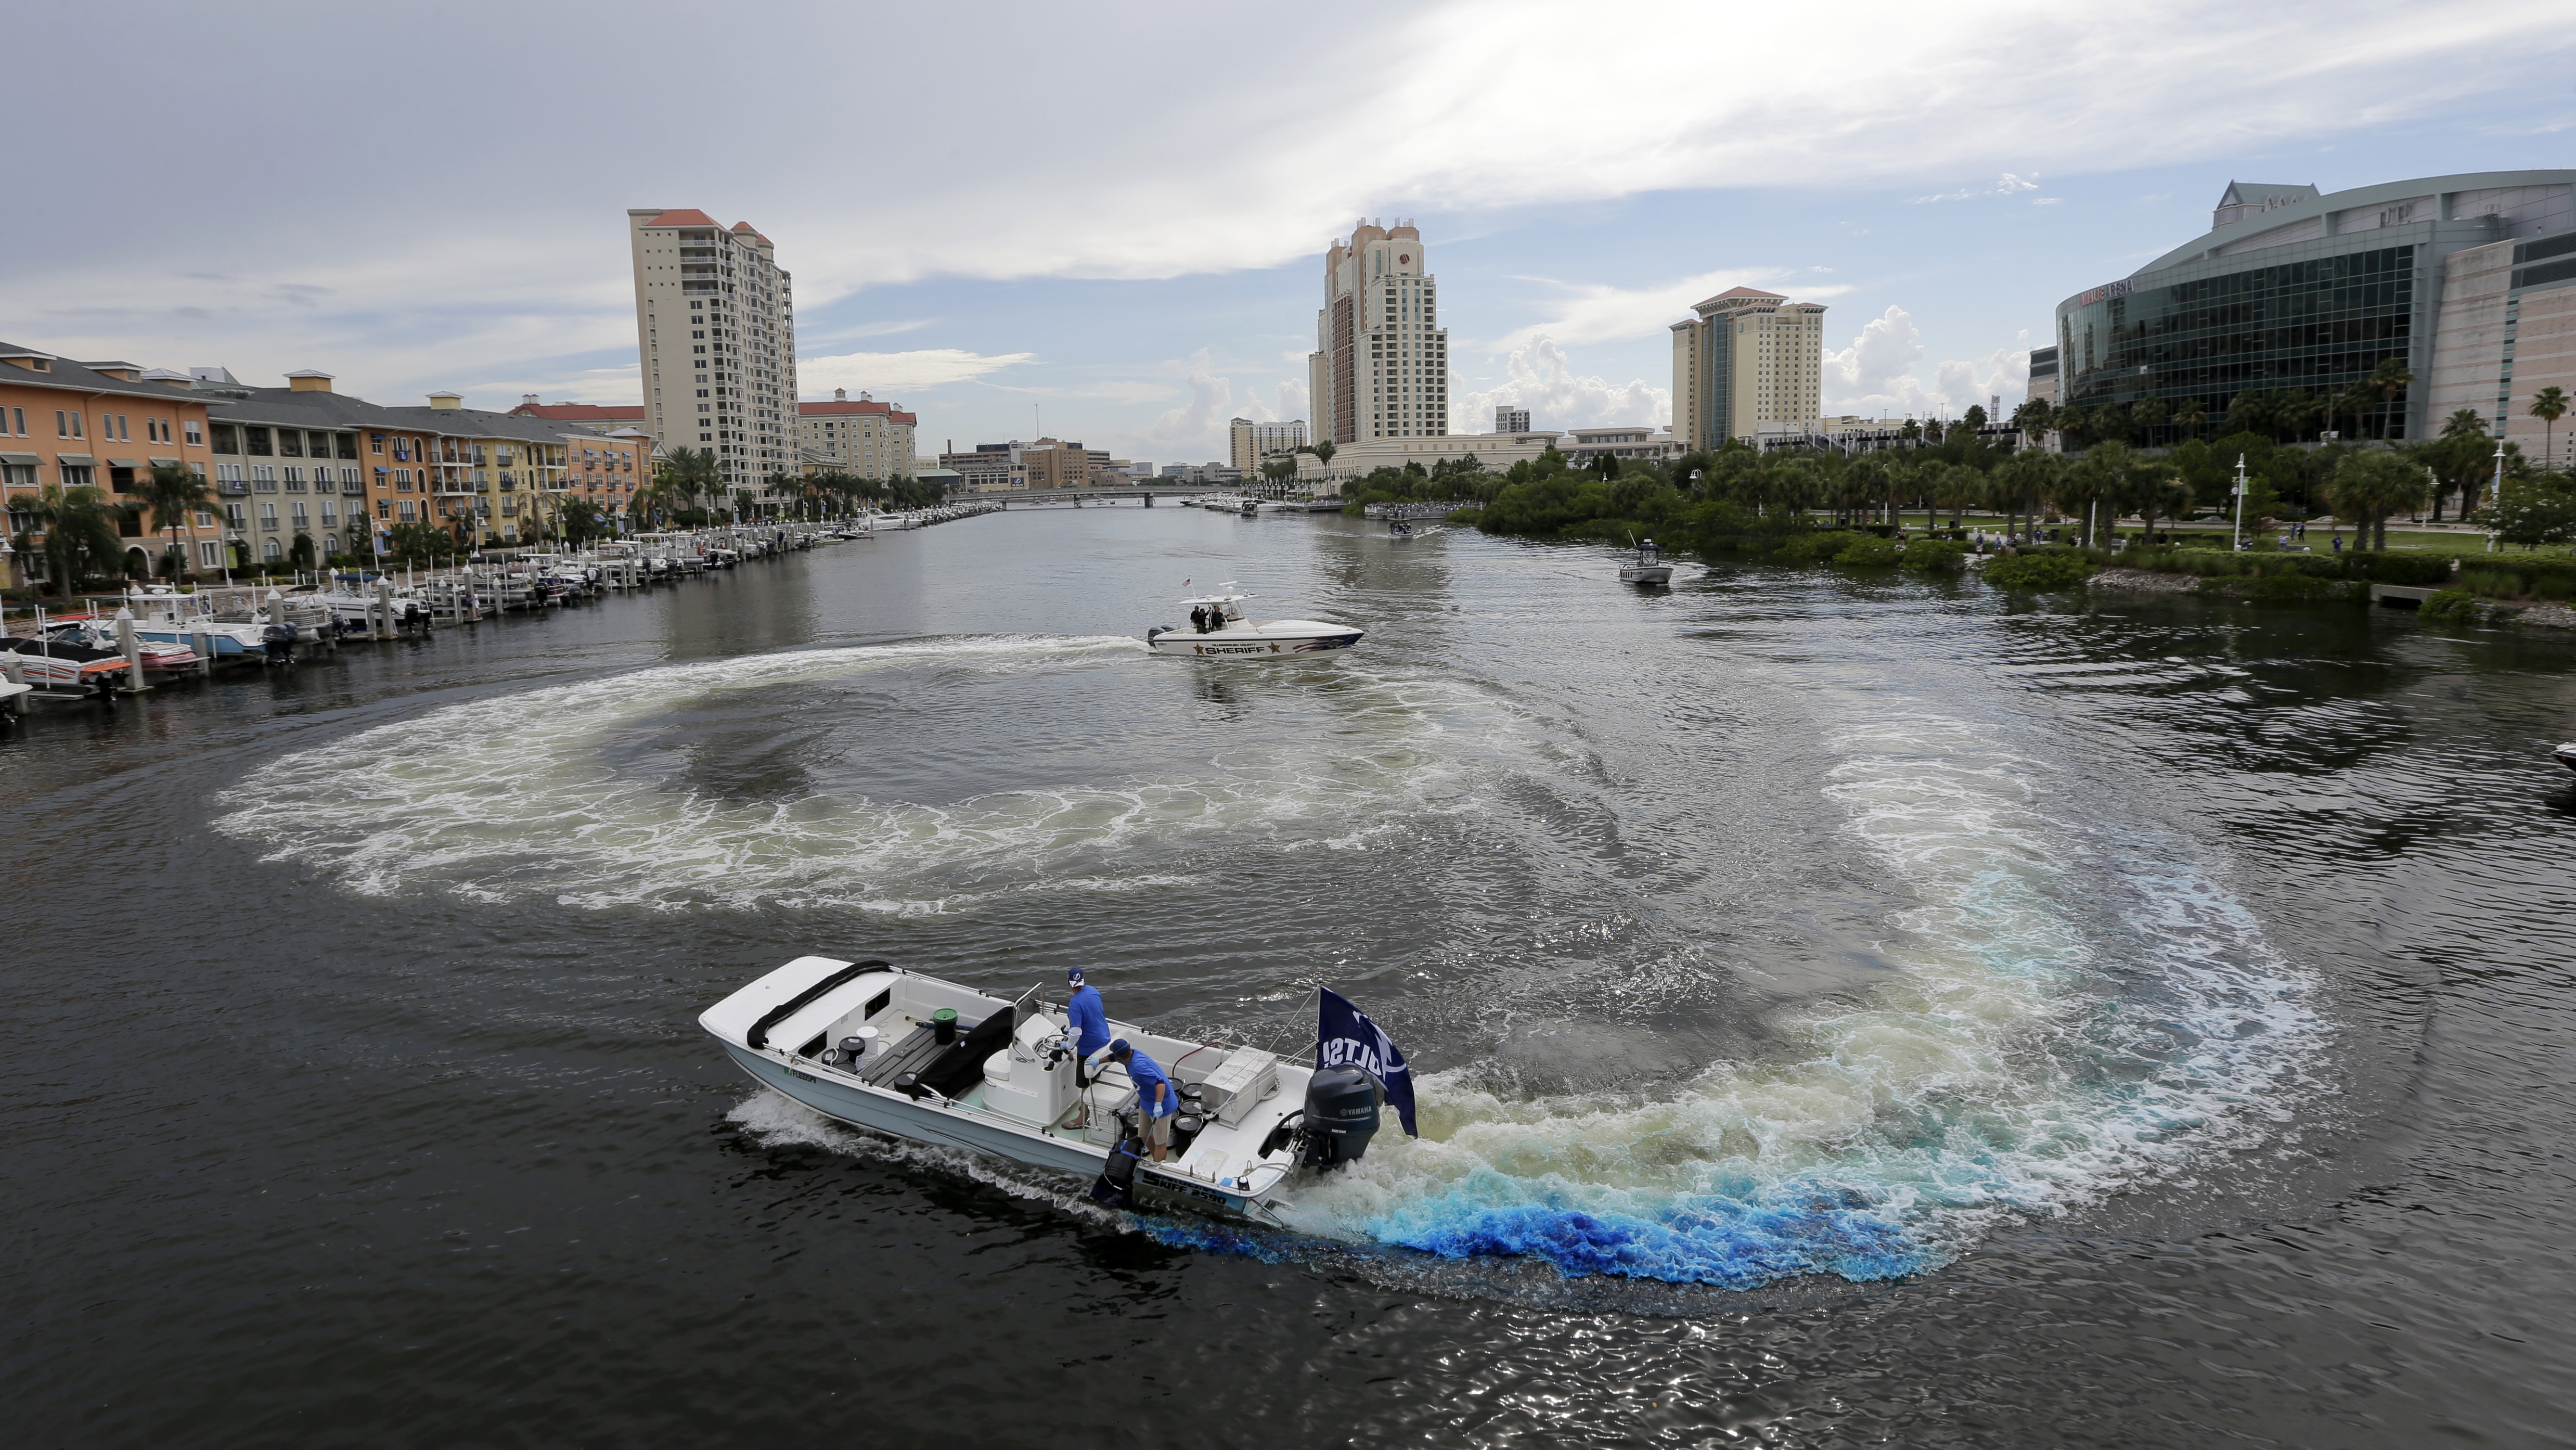 Tampa Bay Lightning supporters dye the Garrison Channel blue outside Amalie Arena before Game 2 of the NHL hockey Stanley Cup Final against the Chicago Blackhawks on Saturday, June 6, 2015, in Tampa Fla. (AP Photo/Chris O'Meara)